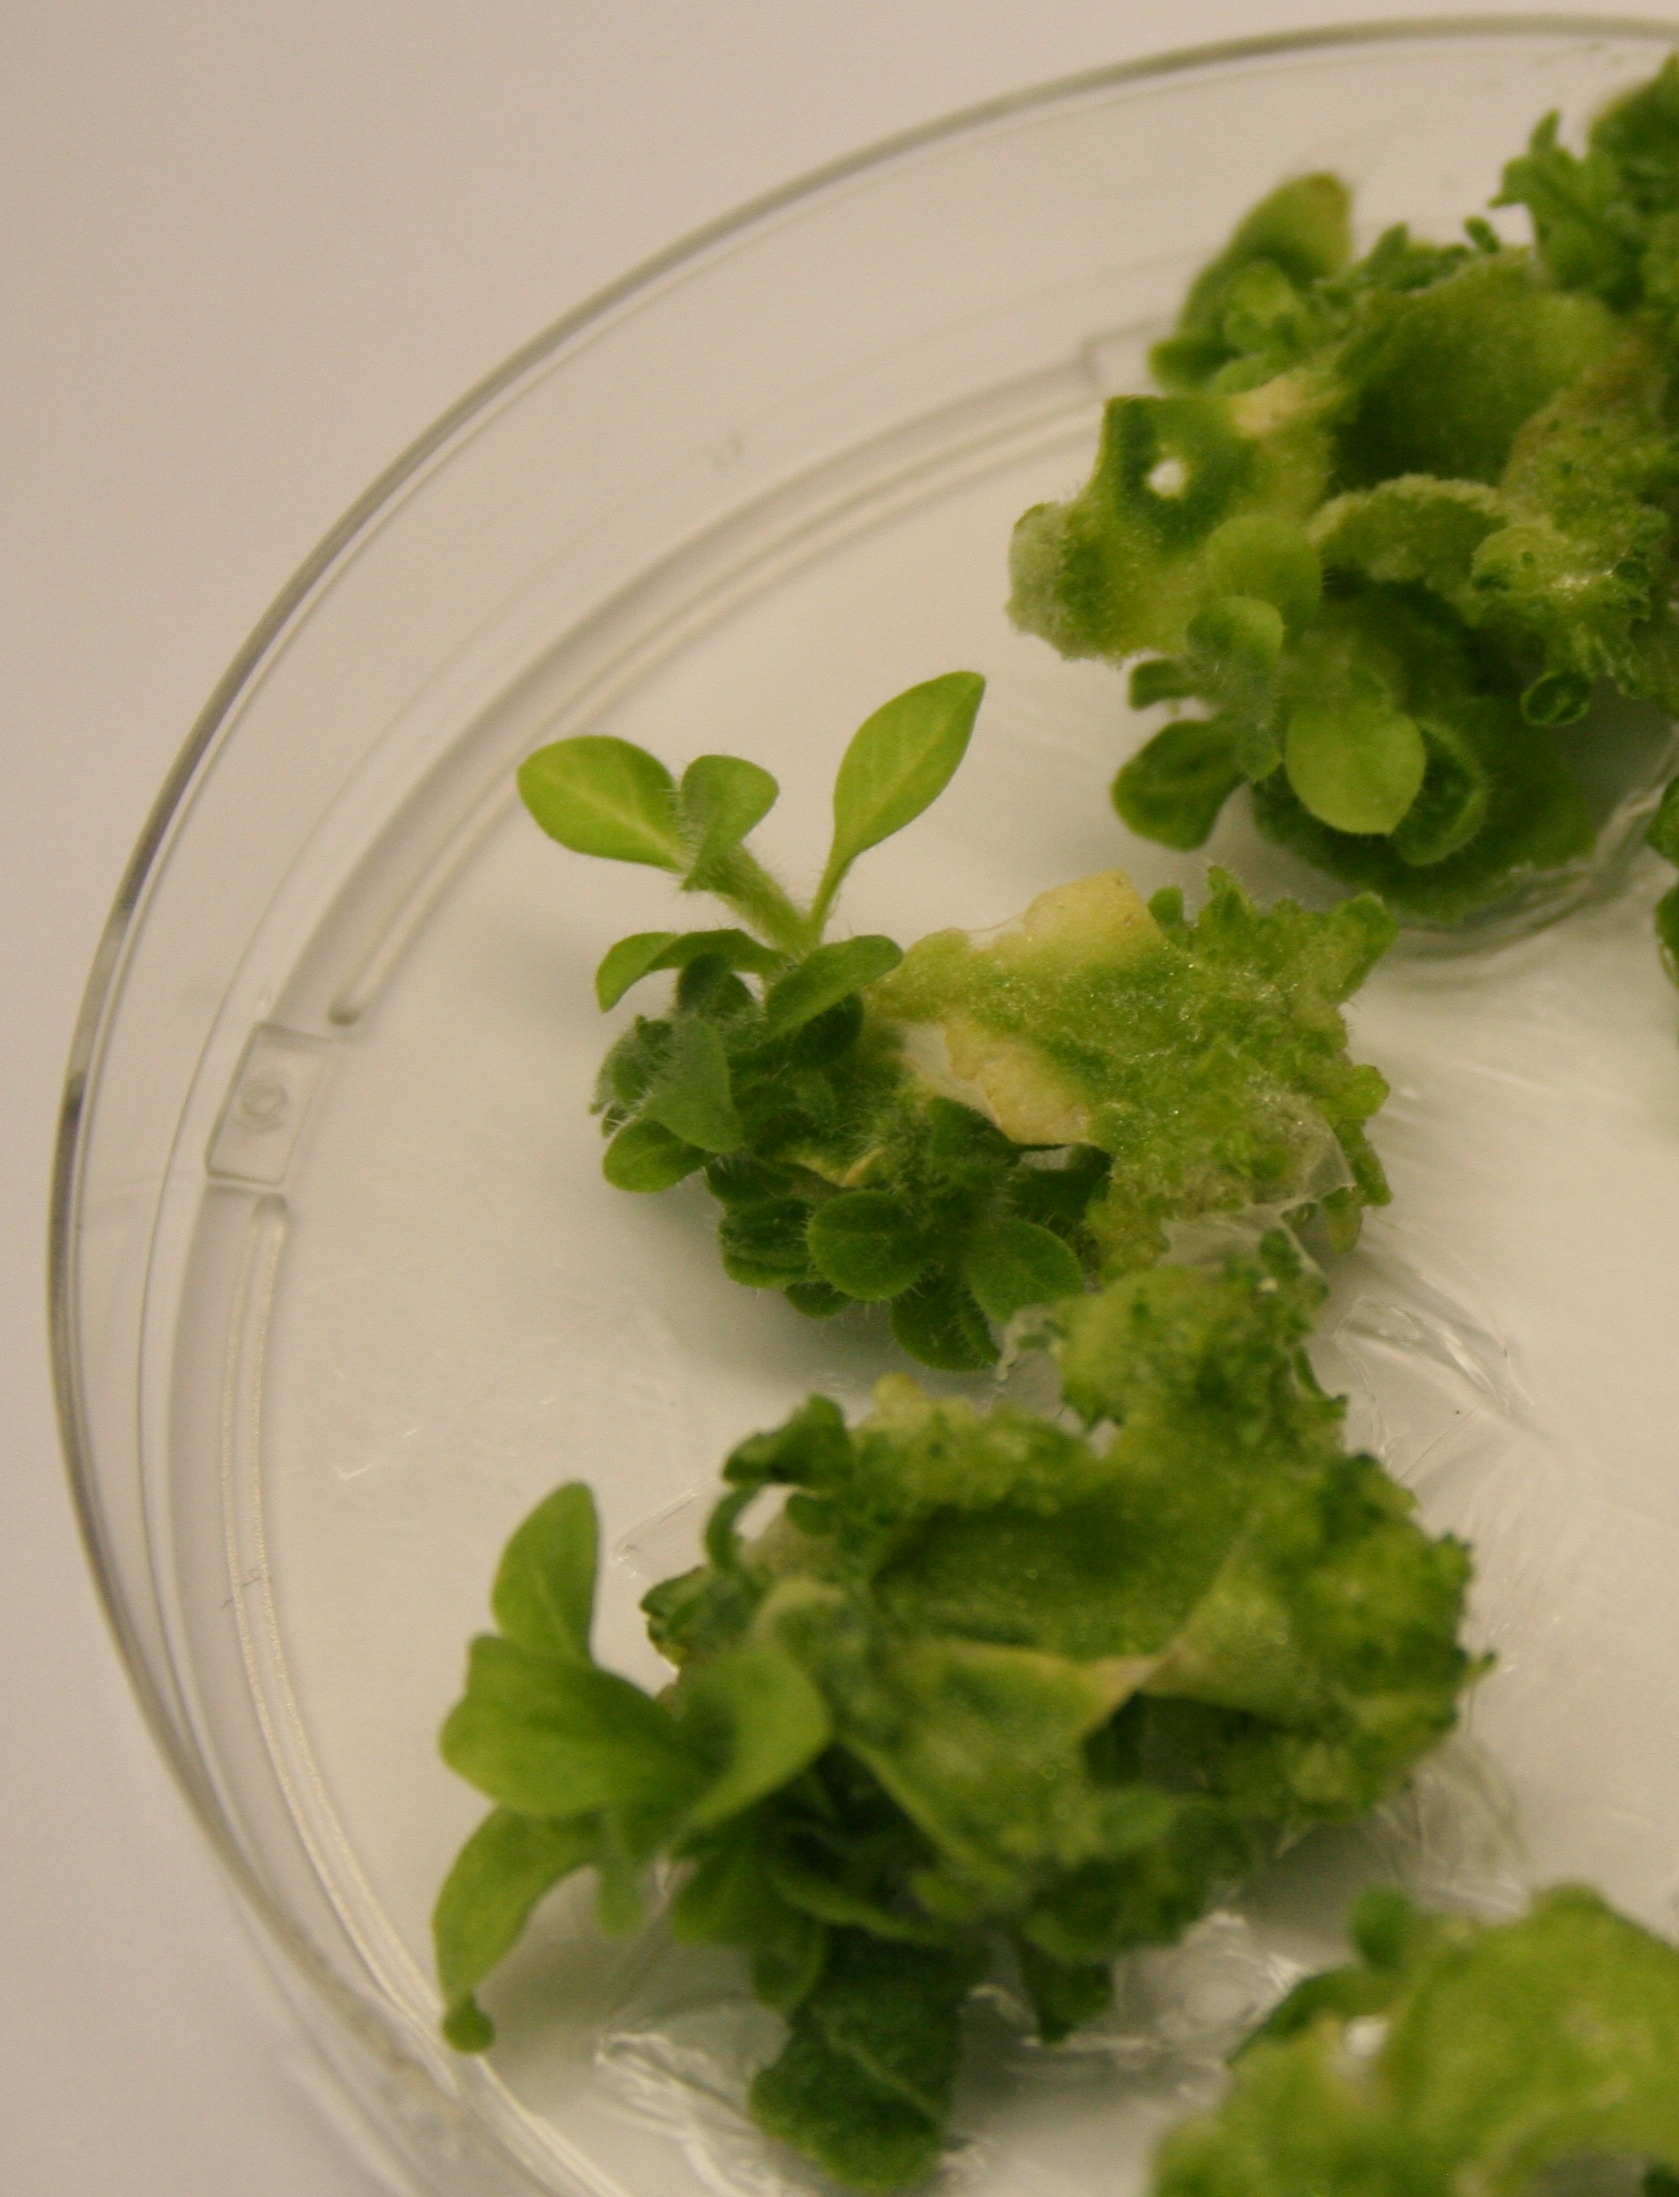 how to make tissue culture